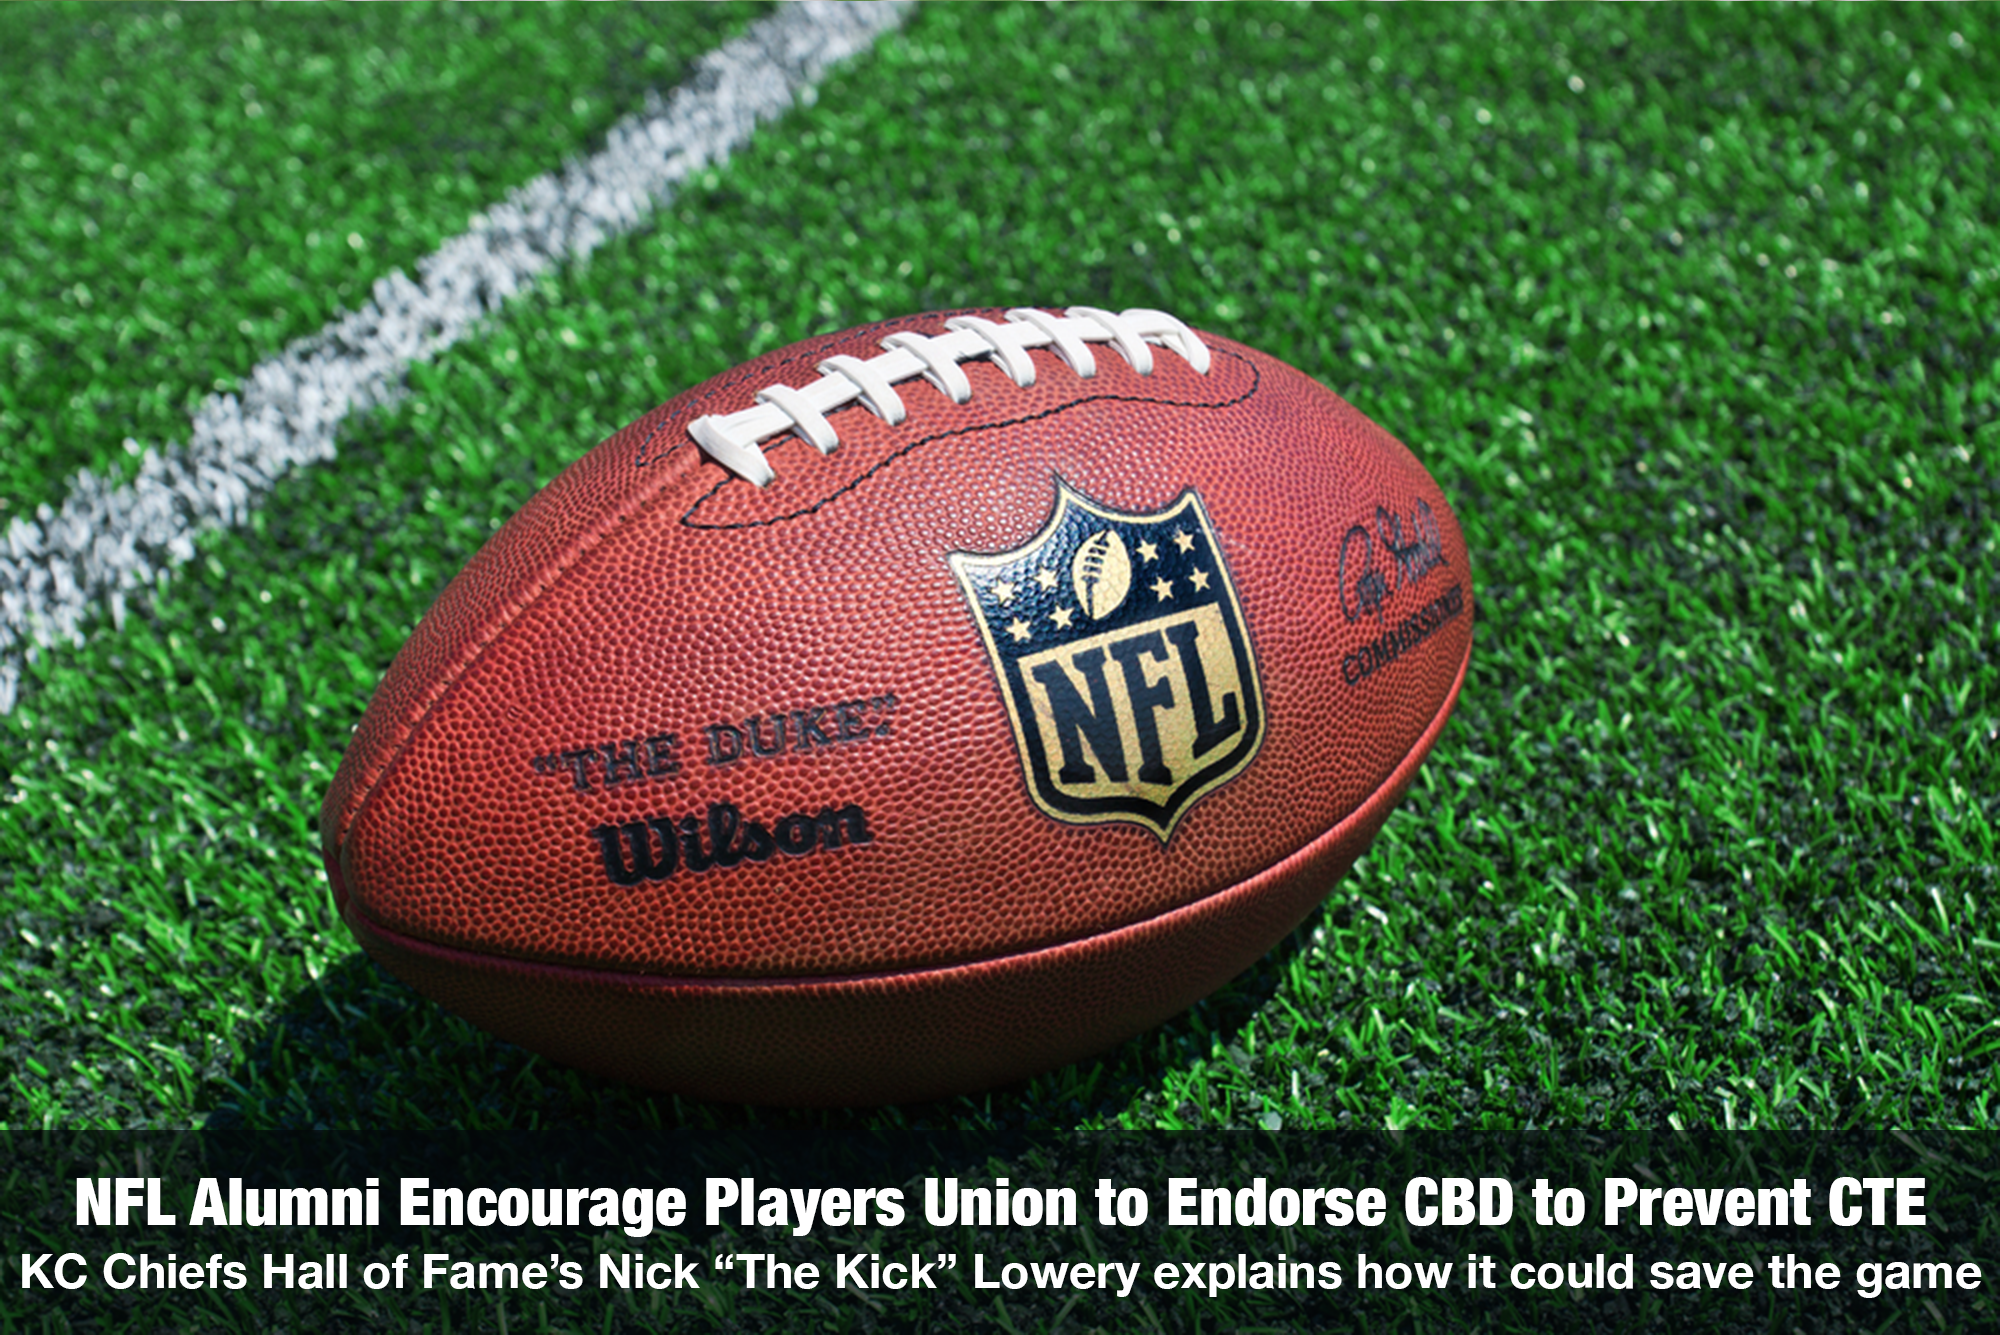 NFL Alumni Encourage Players Union to Endorse CBD to Prevent CTE with K.C. Chiefs' Hall of Famer Nick Lowery on The Cannabis Reporter Radio Show hosted by Snowden Bishop